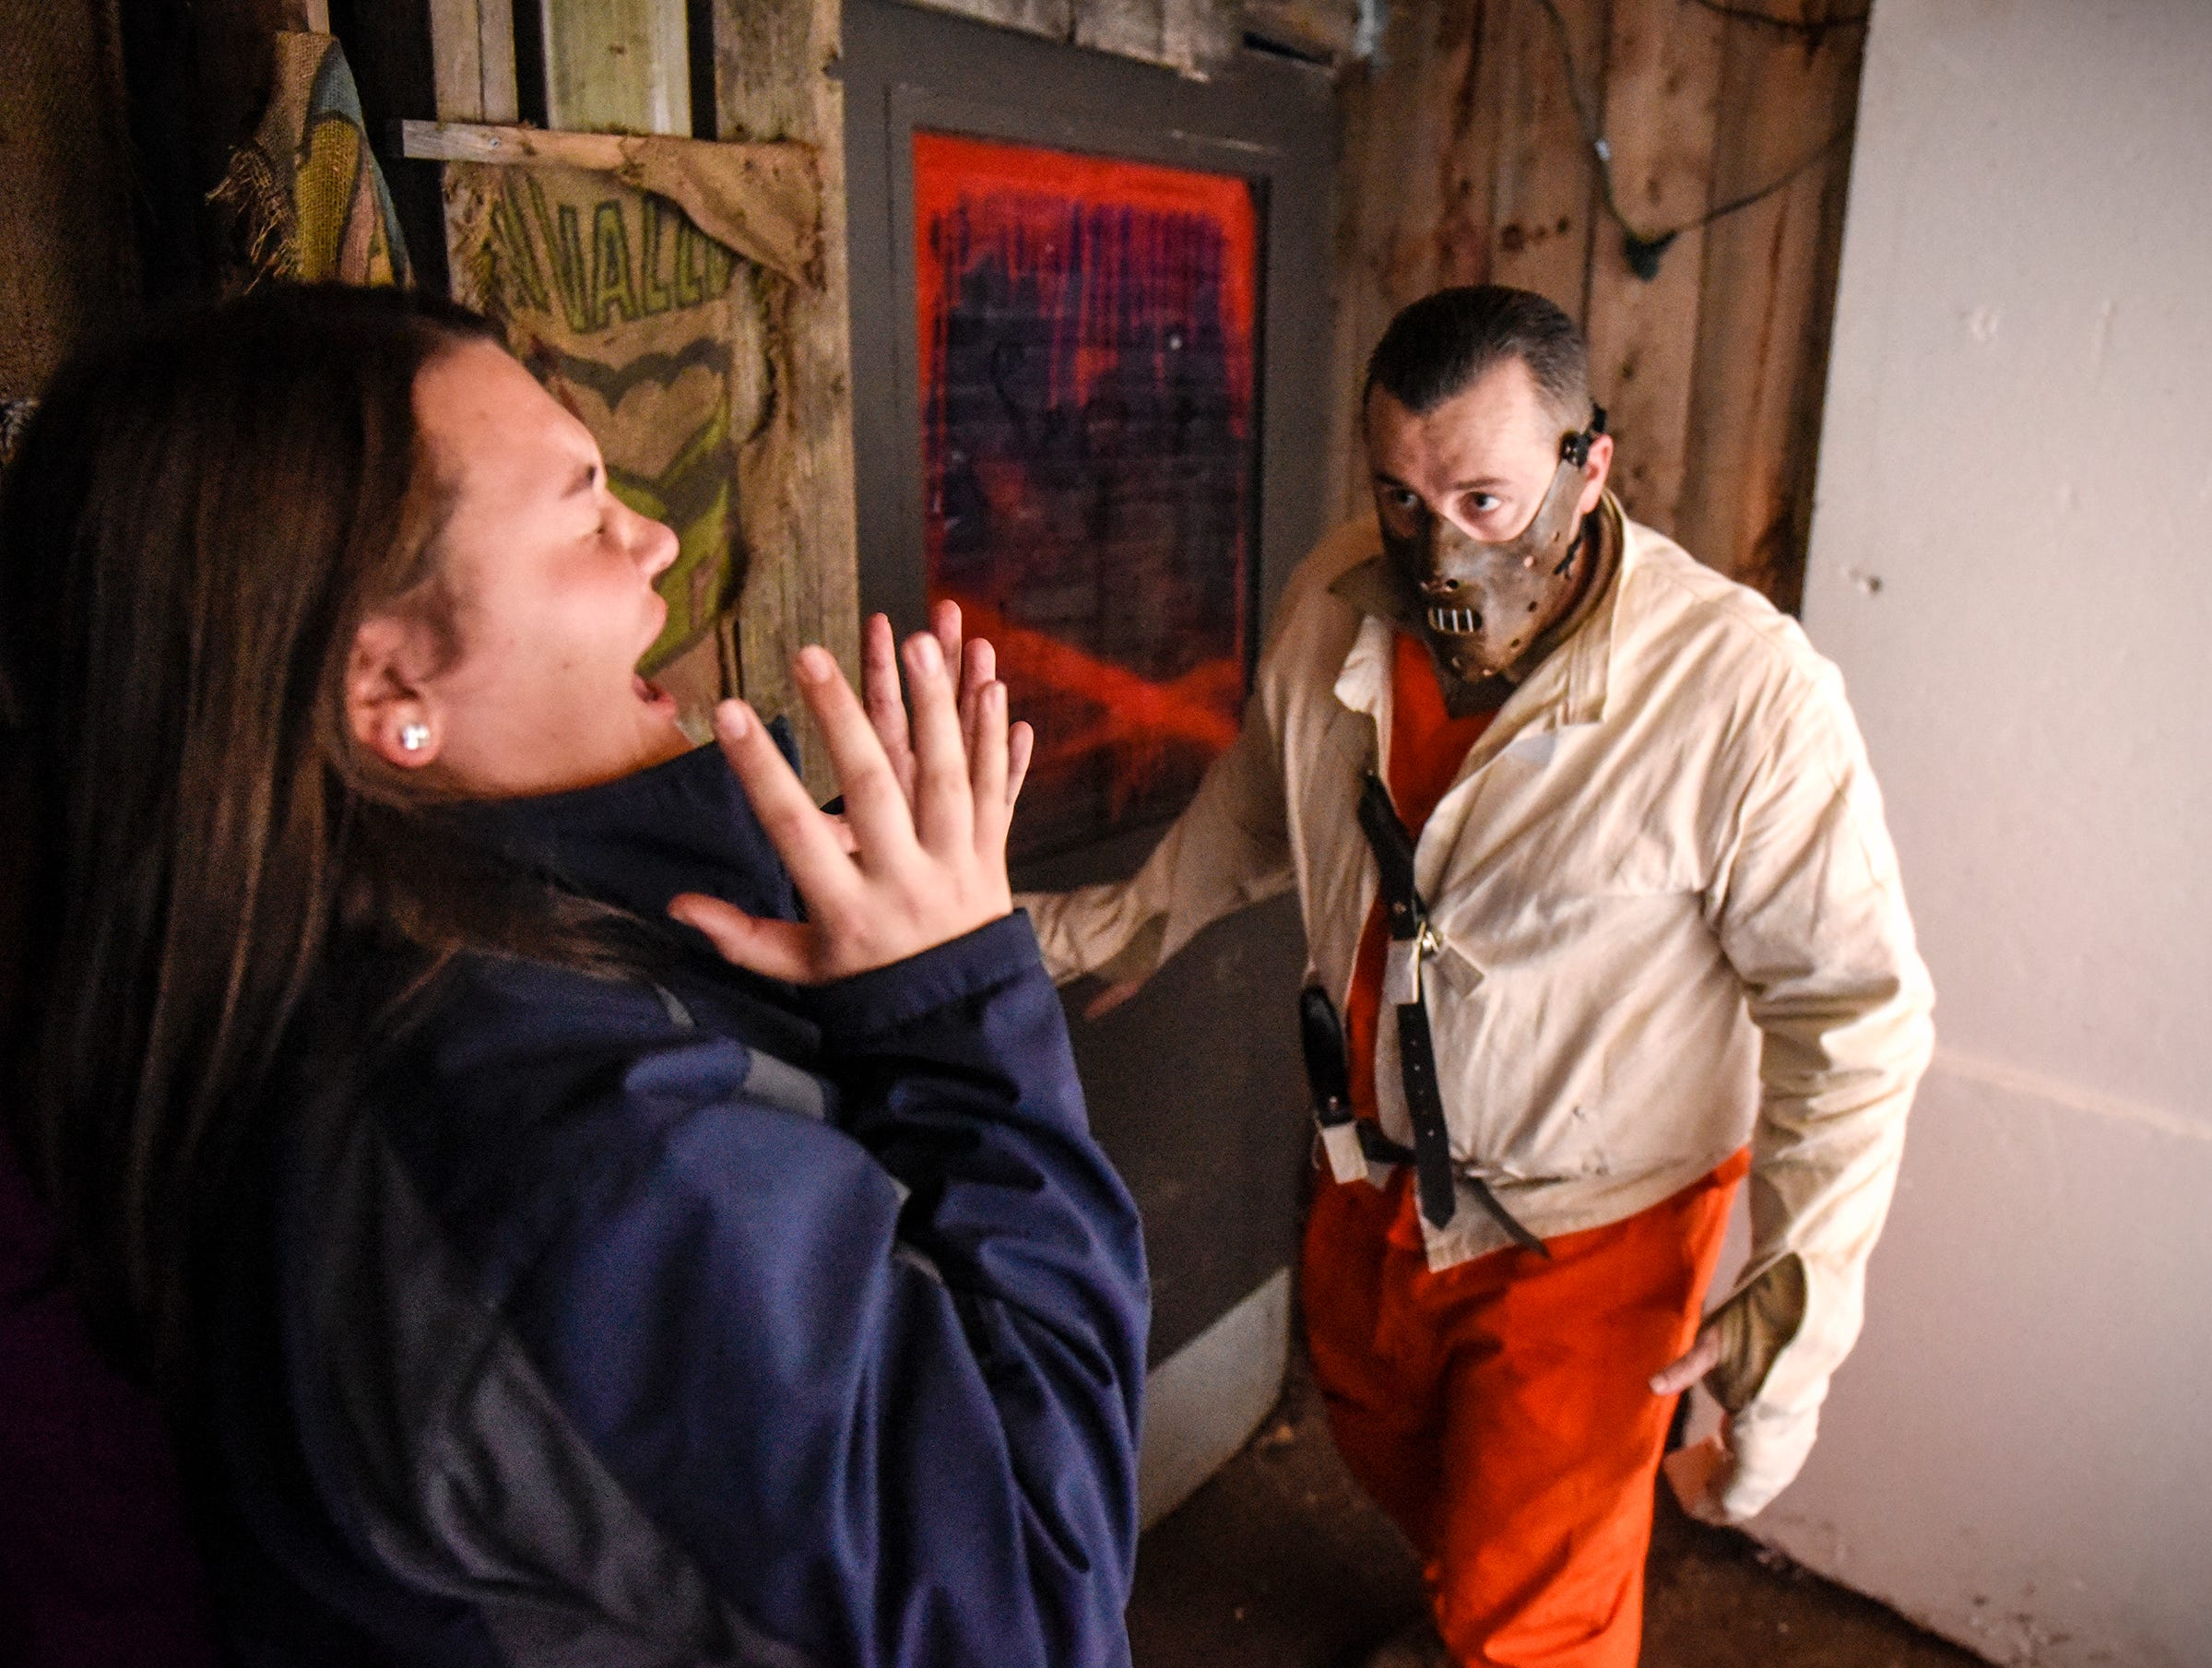 Guests react to a character Thursday, Oct. 18, at Molitor's Haunted Acres in Sauk Rapids.